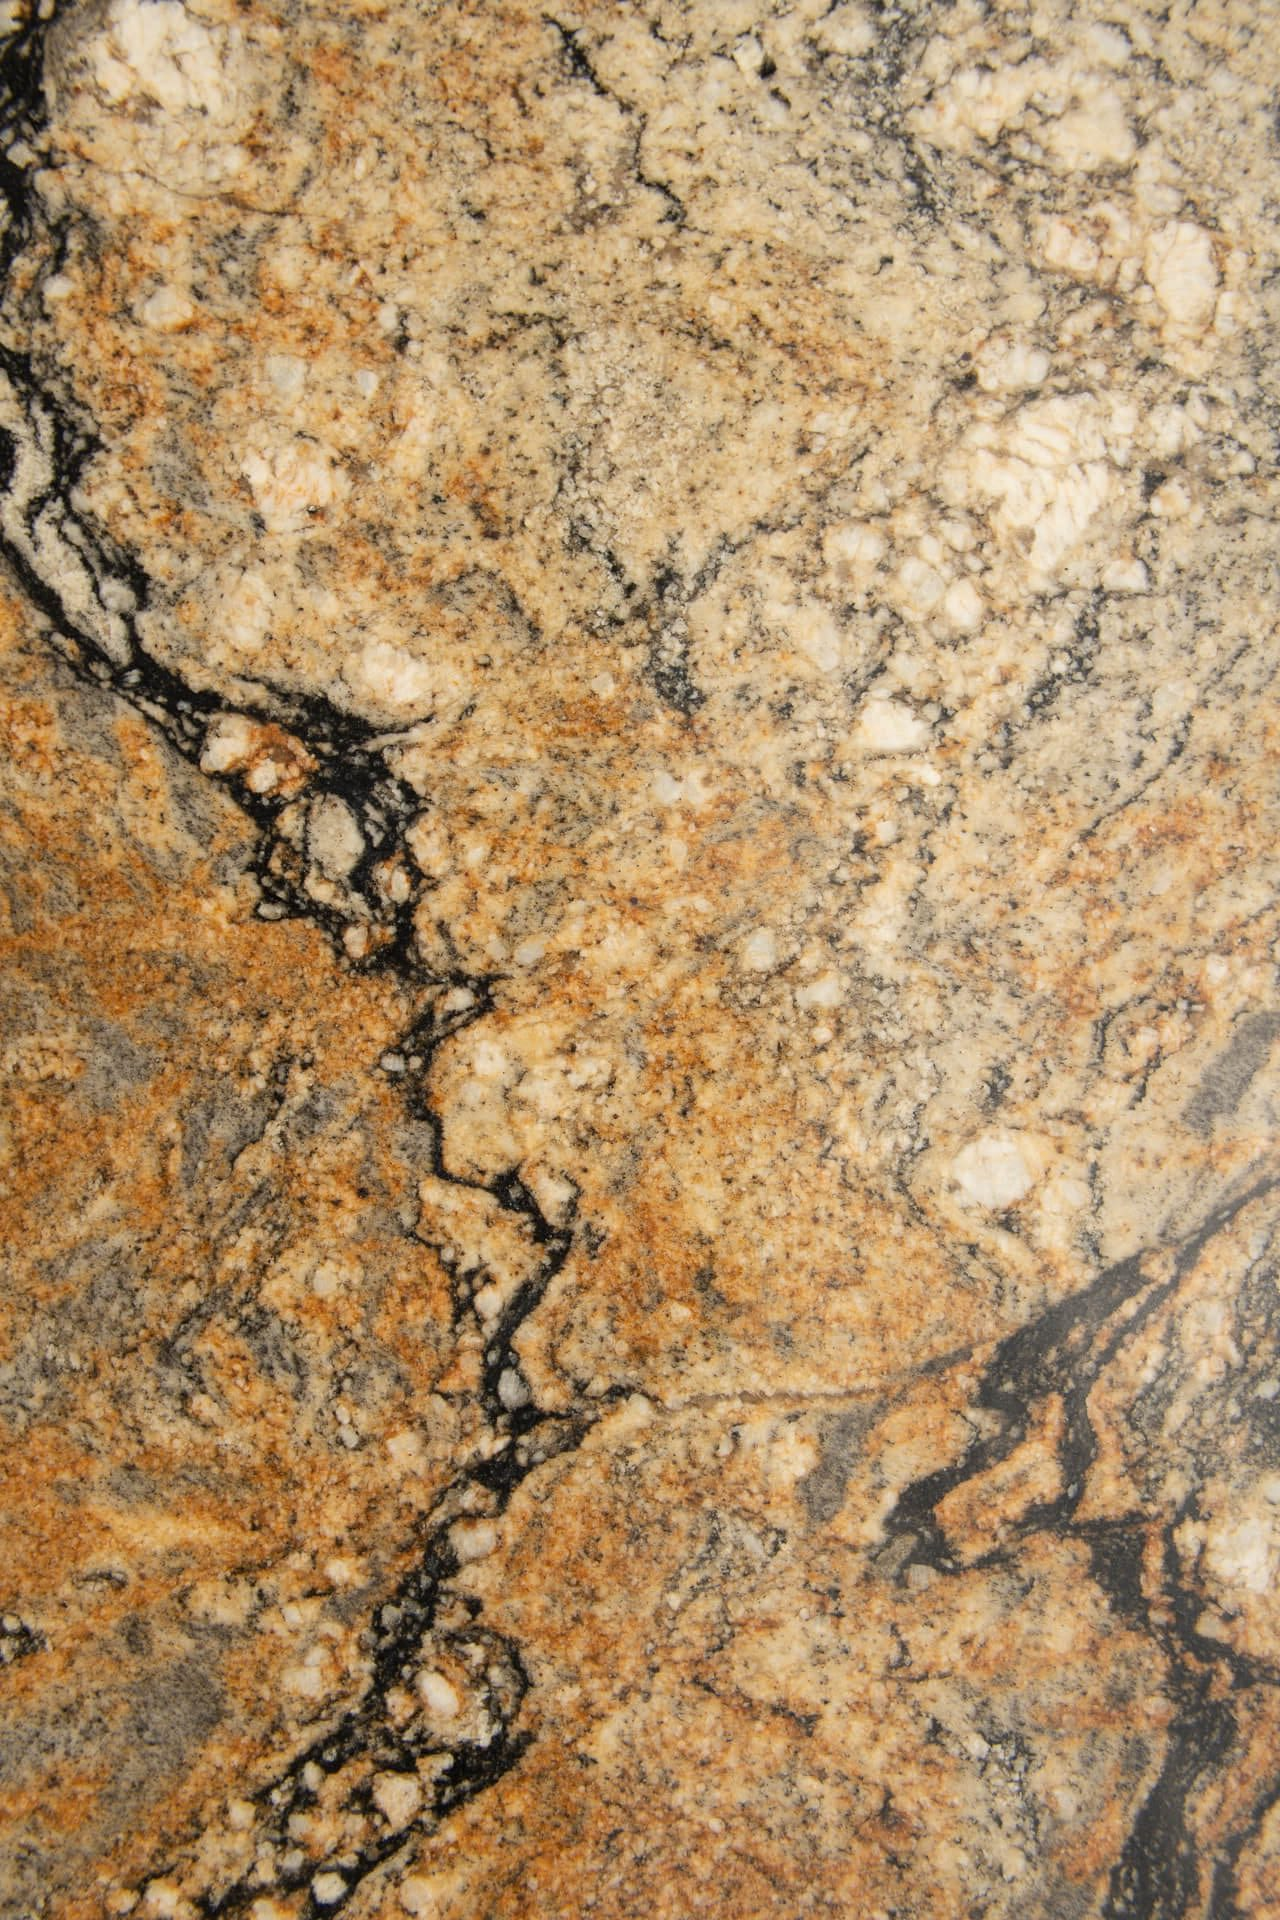 superior gold cu countertop - by Magnolia Countertops. A Countertop fabricator of Granite Countertops, Marble Countertops, and Quartz Countertops in Cookeville and Crossville TN.